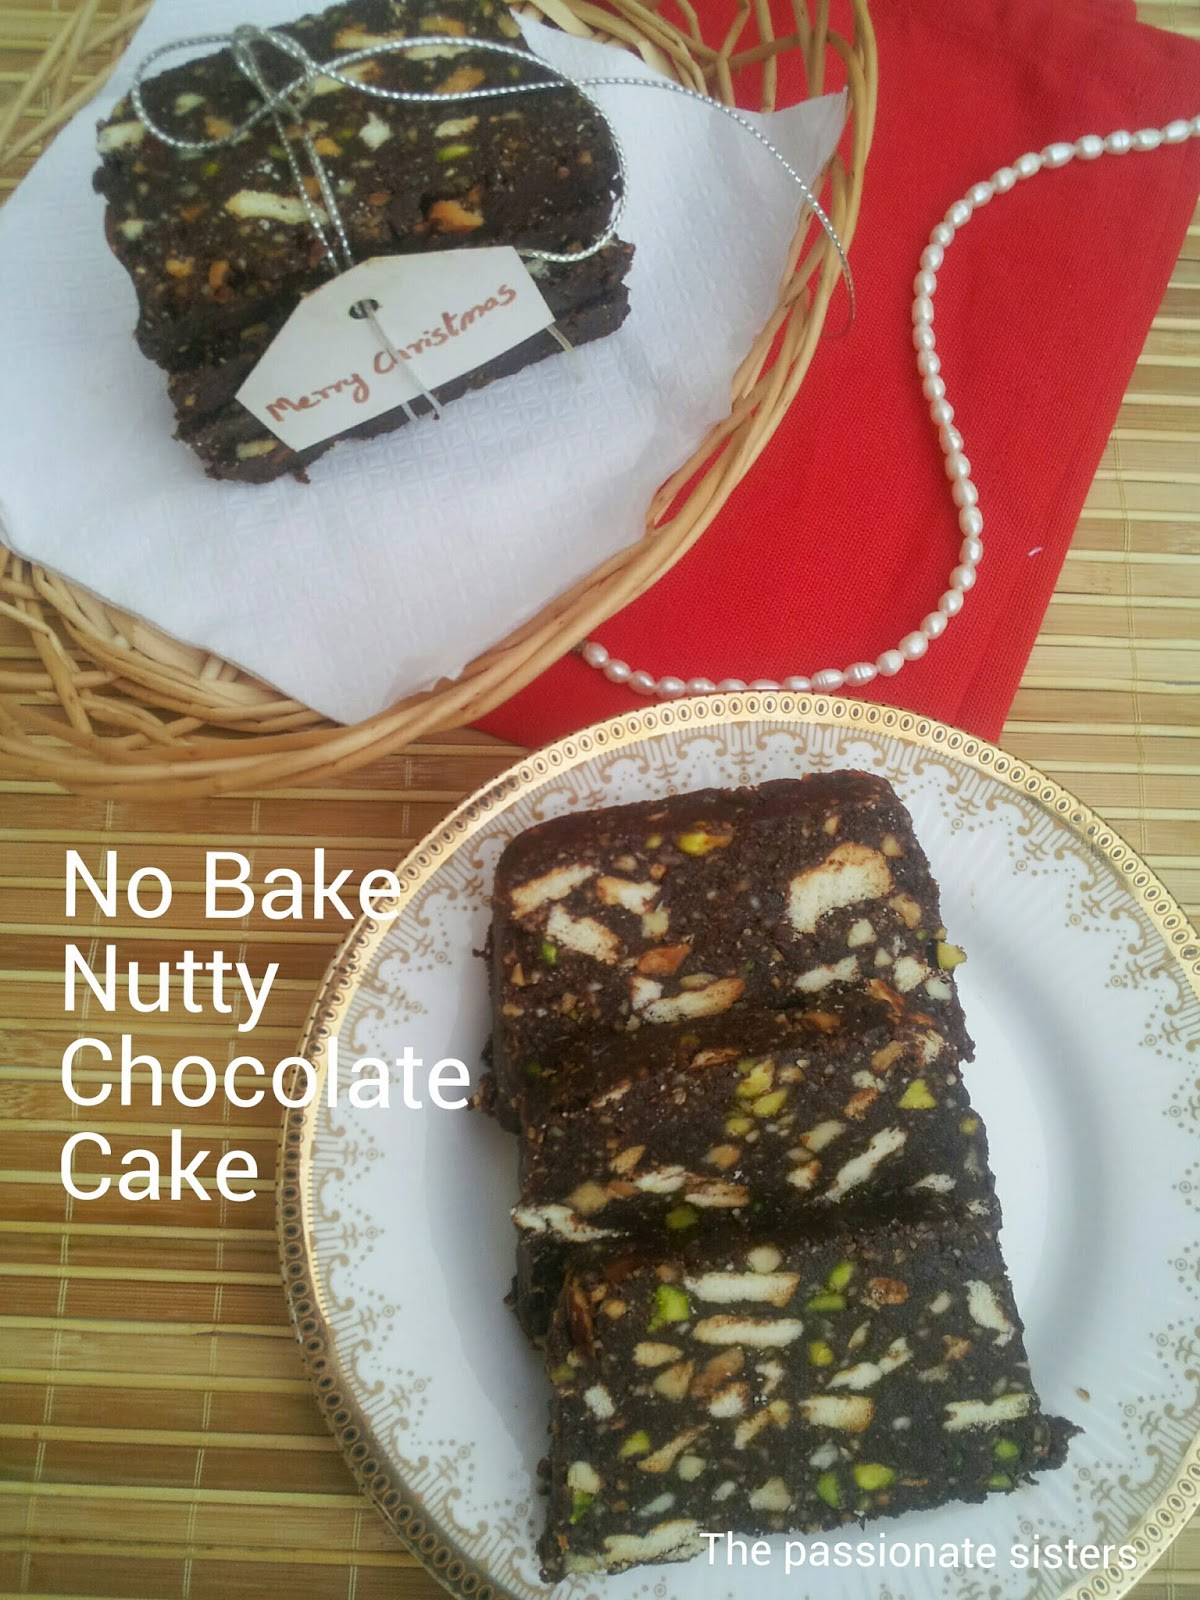 No Bake Chocolate Nutty Cake